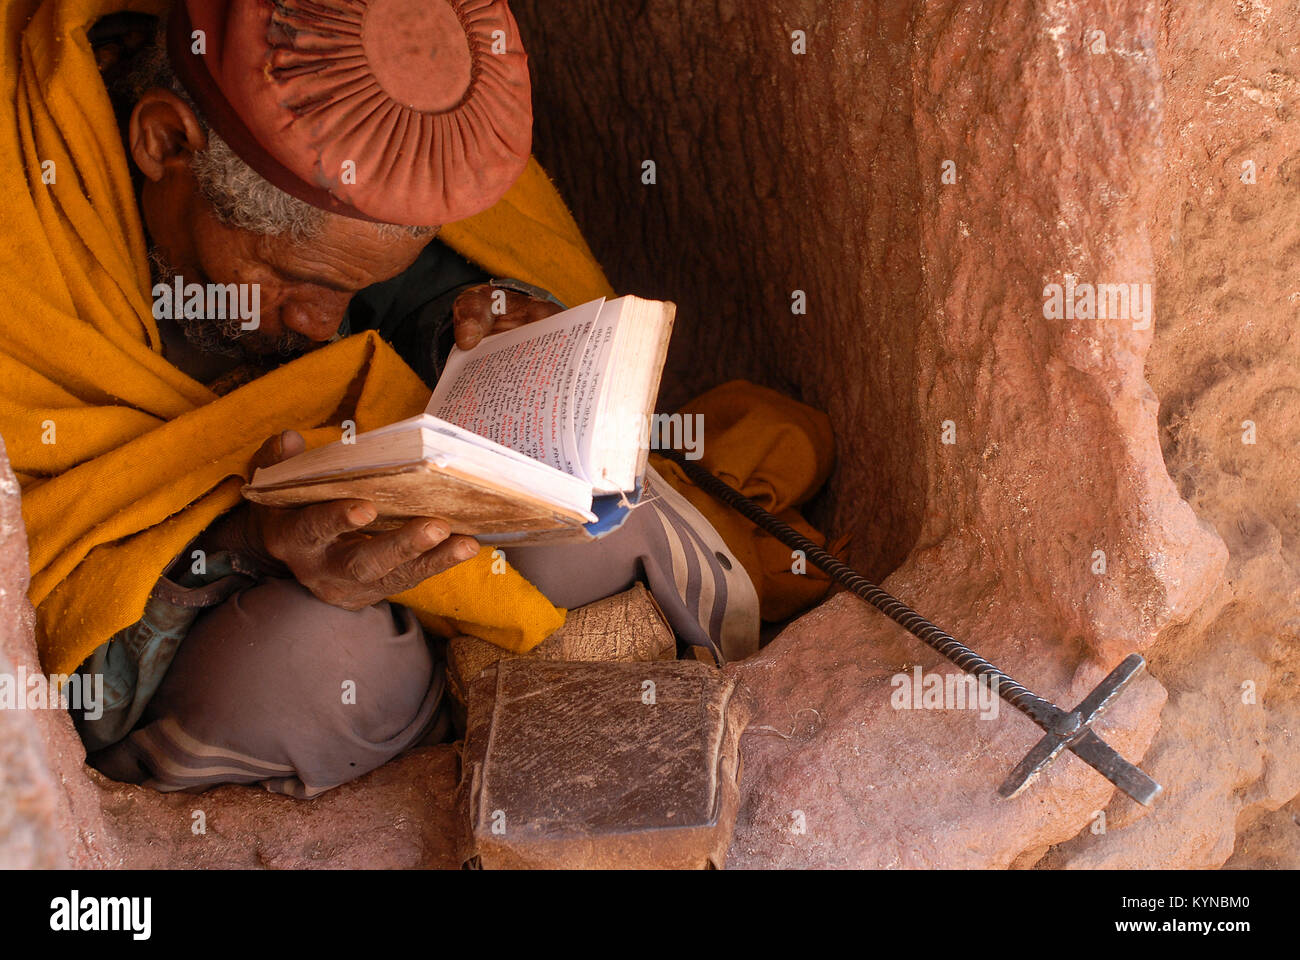 ETHIOPIA, Lalibela, rock churches built by King Lalibela 800 years ago, hermit sitting in tiny cave reading the - Stock Image